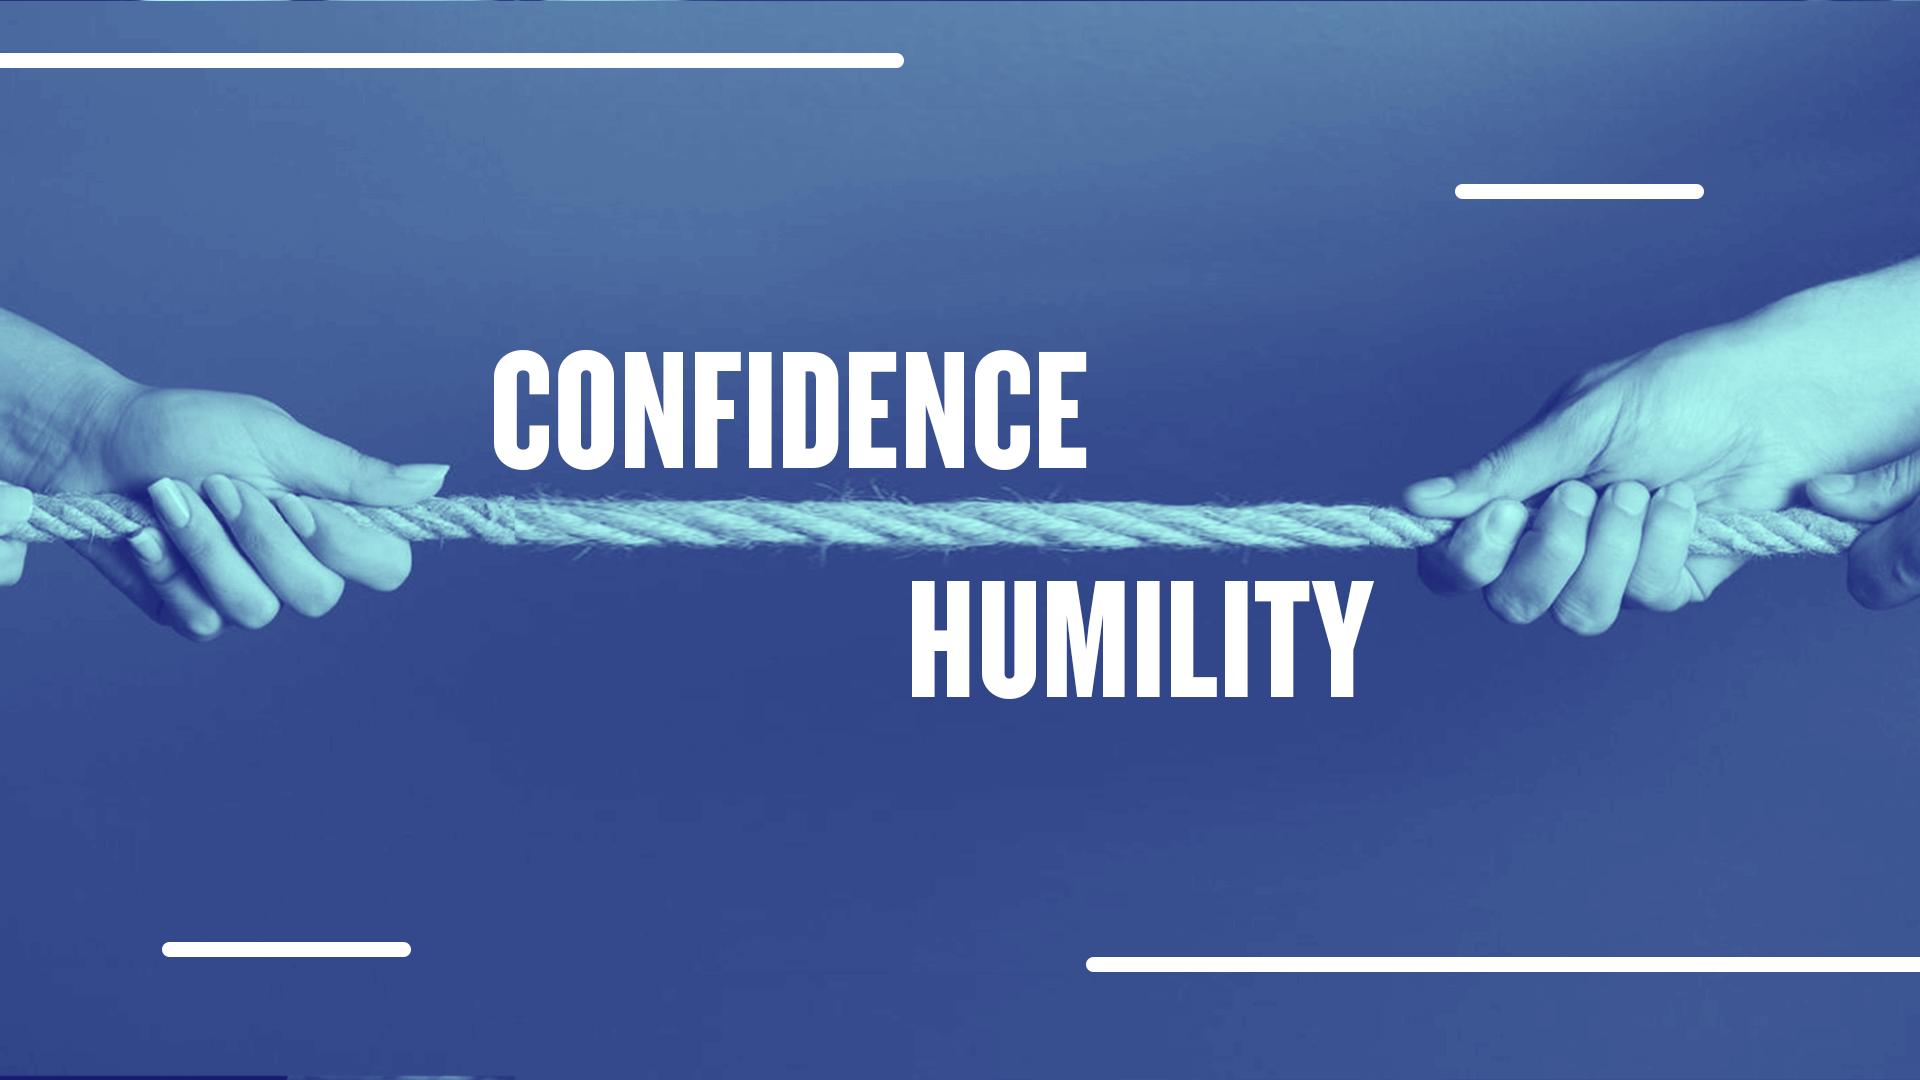 Scale of Confidence vs. Humility